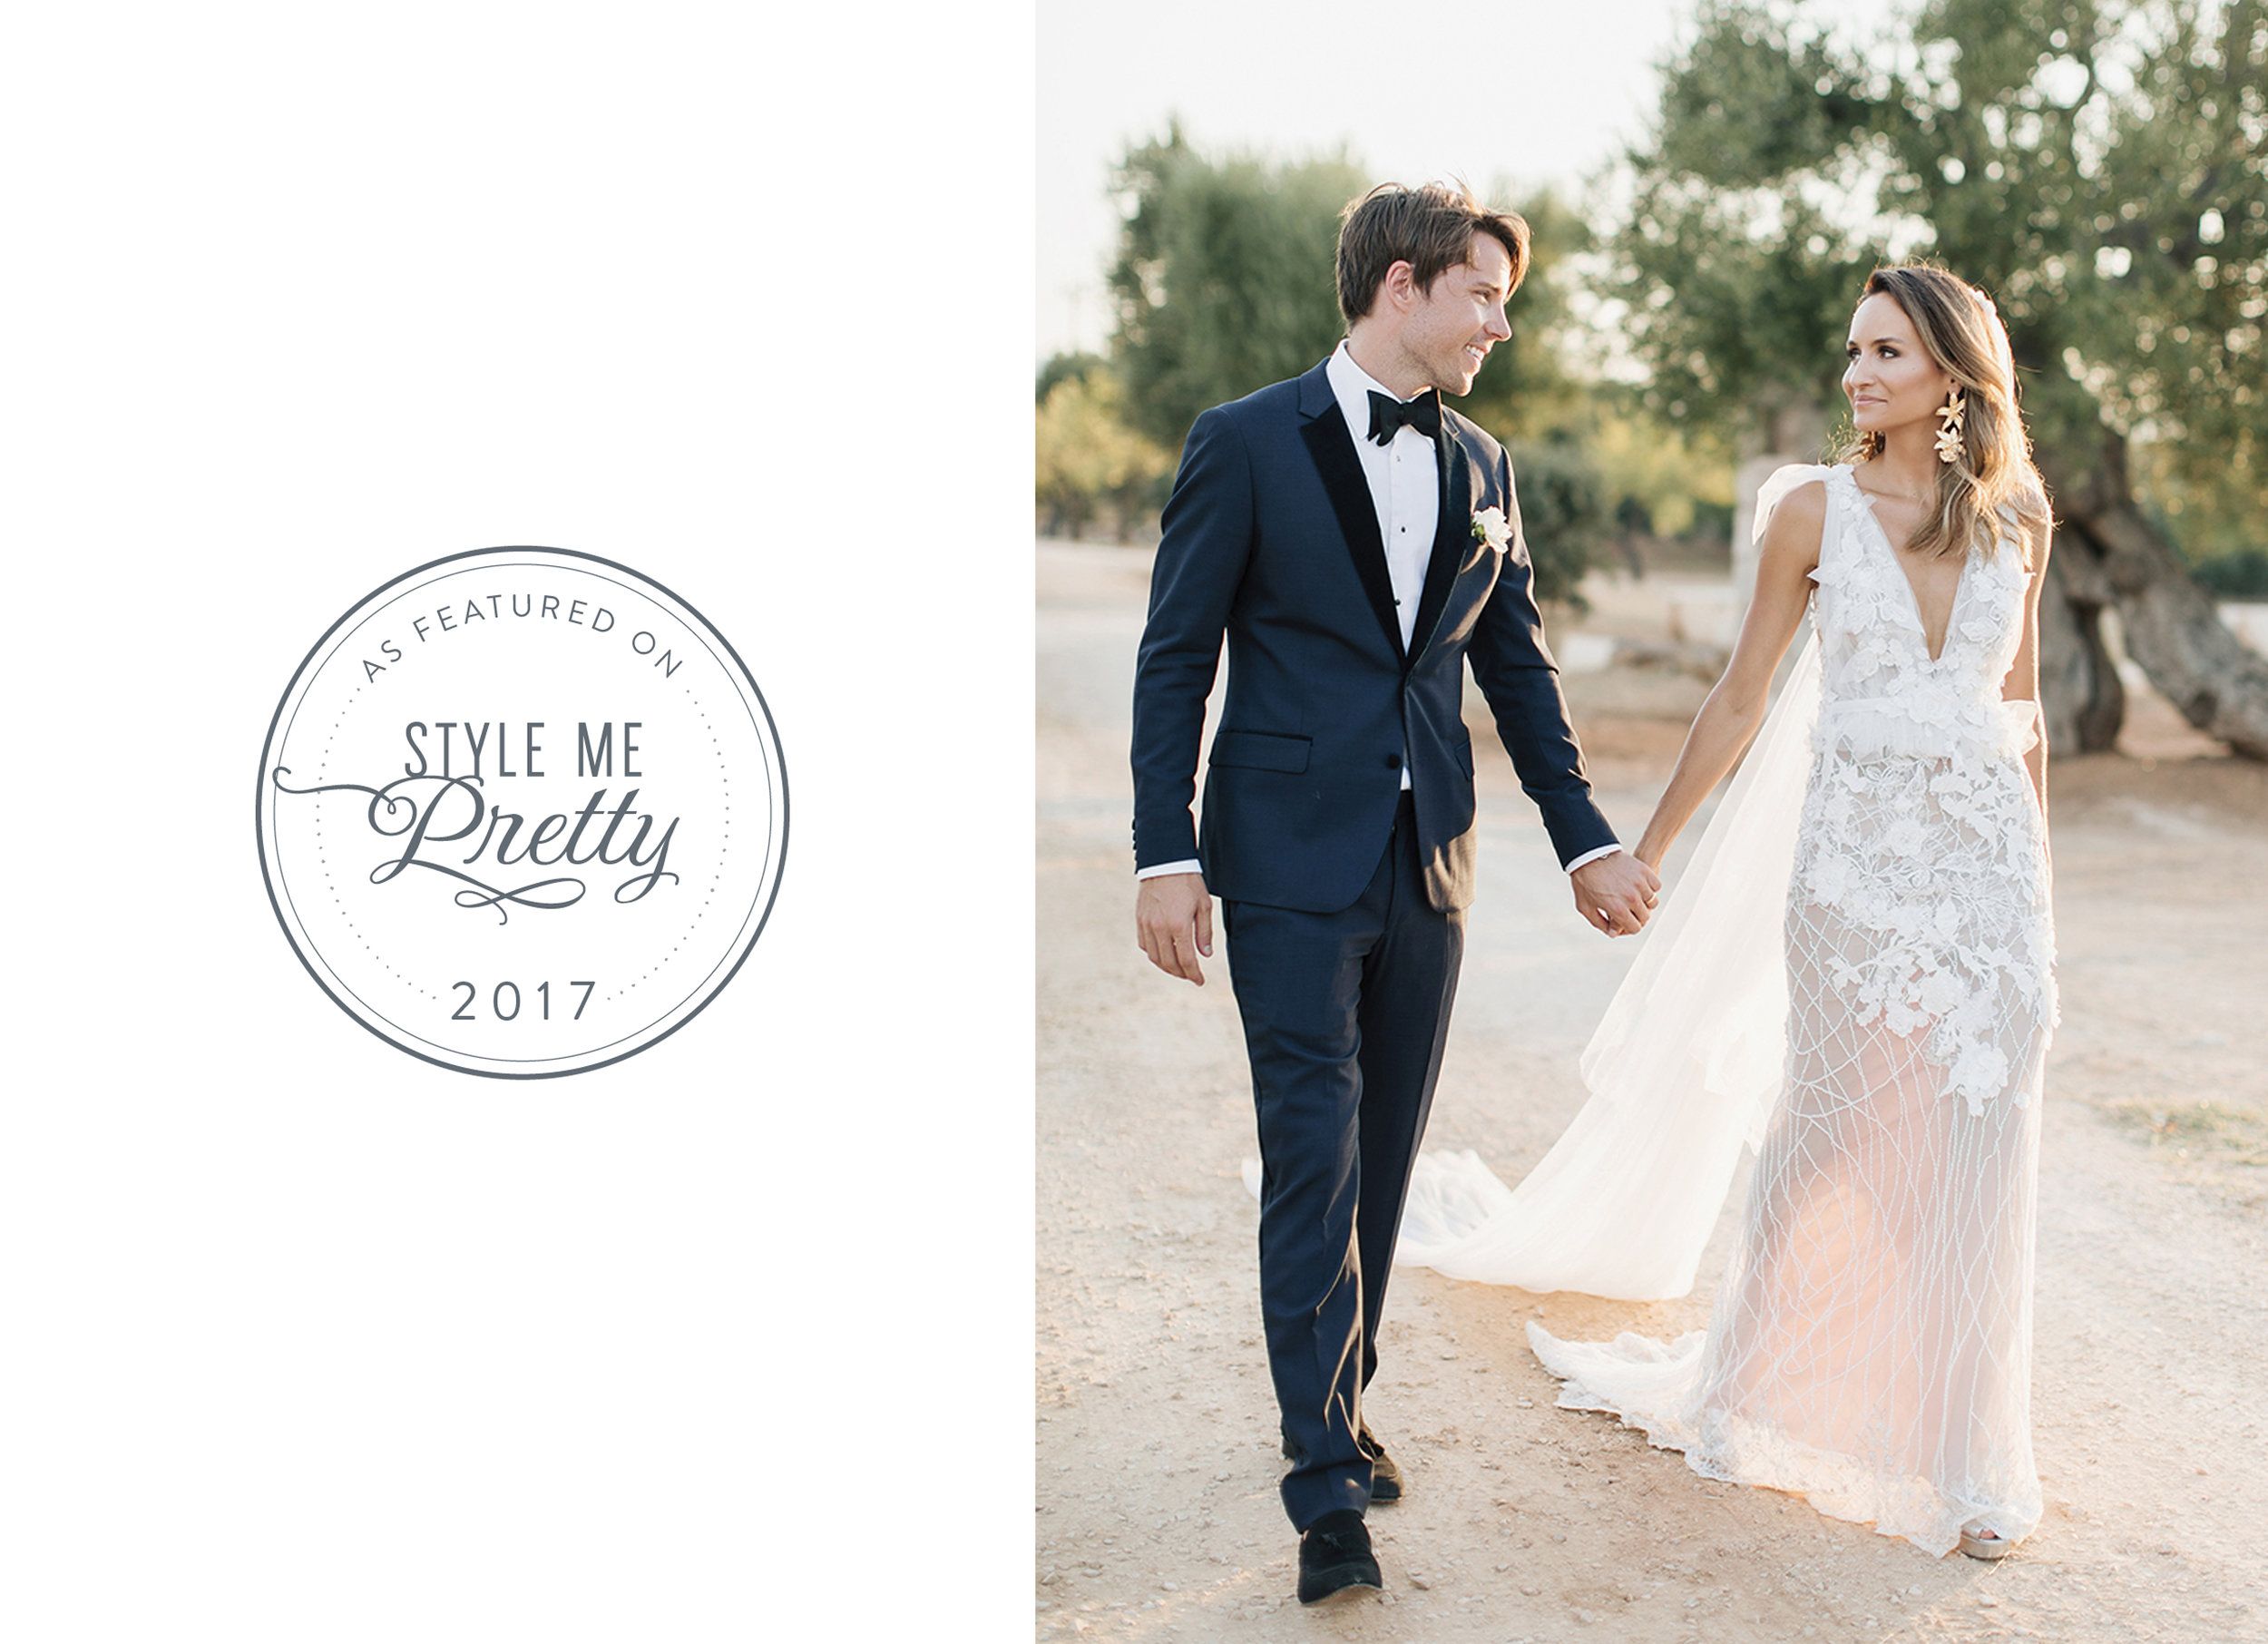 featured Style Me Pretty 2018 by Nastia Vesna Photography in Italy.jpg